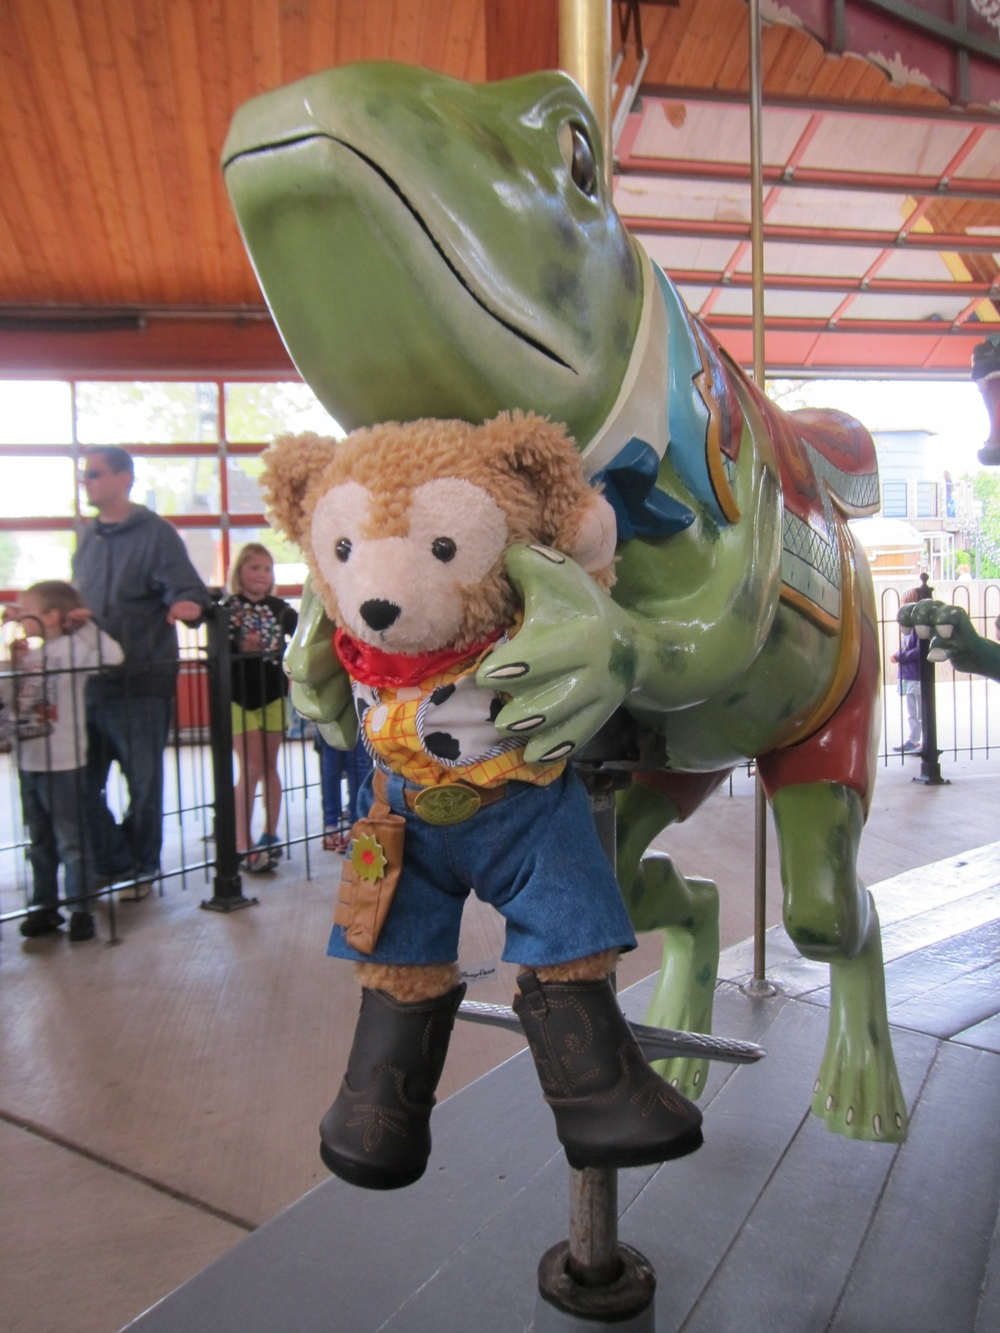 The bear of happiness and luck, meets the carousel frog of good fortune! :-)